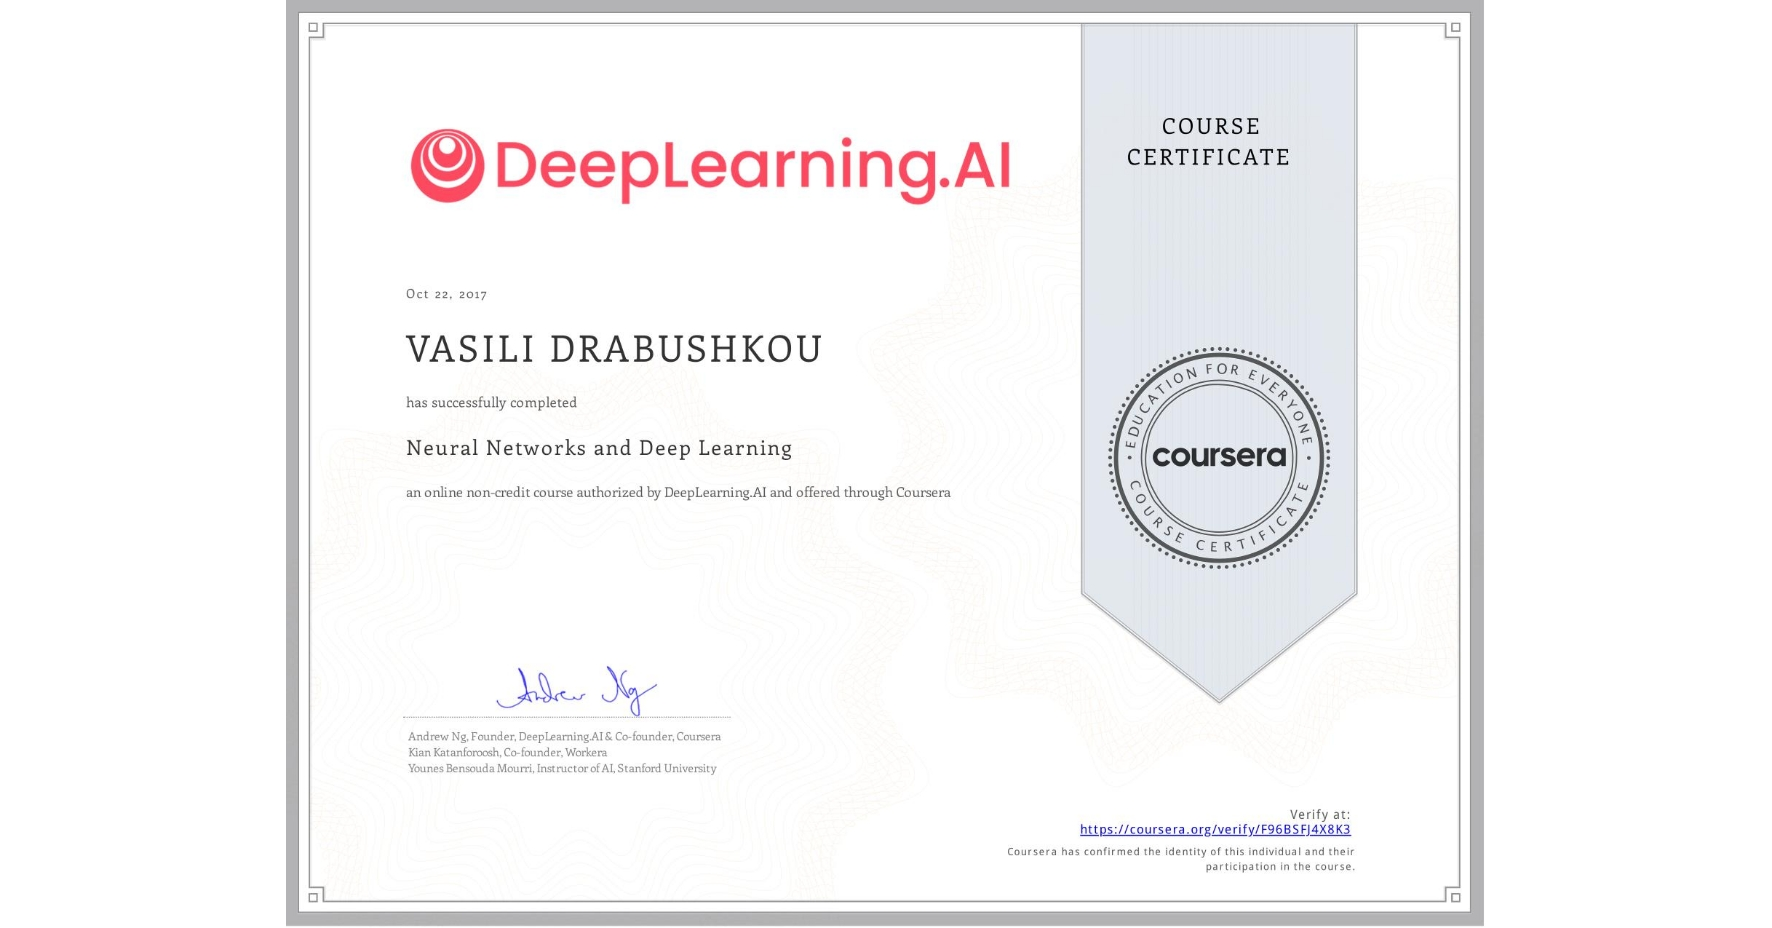 View certificate for VASILI DRABUSHKOU, Neural Networks and Deep Learning, an online non-credit course authorized by DeepLearning.AI and offered through Coursera